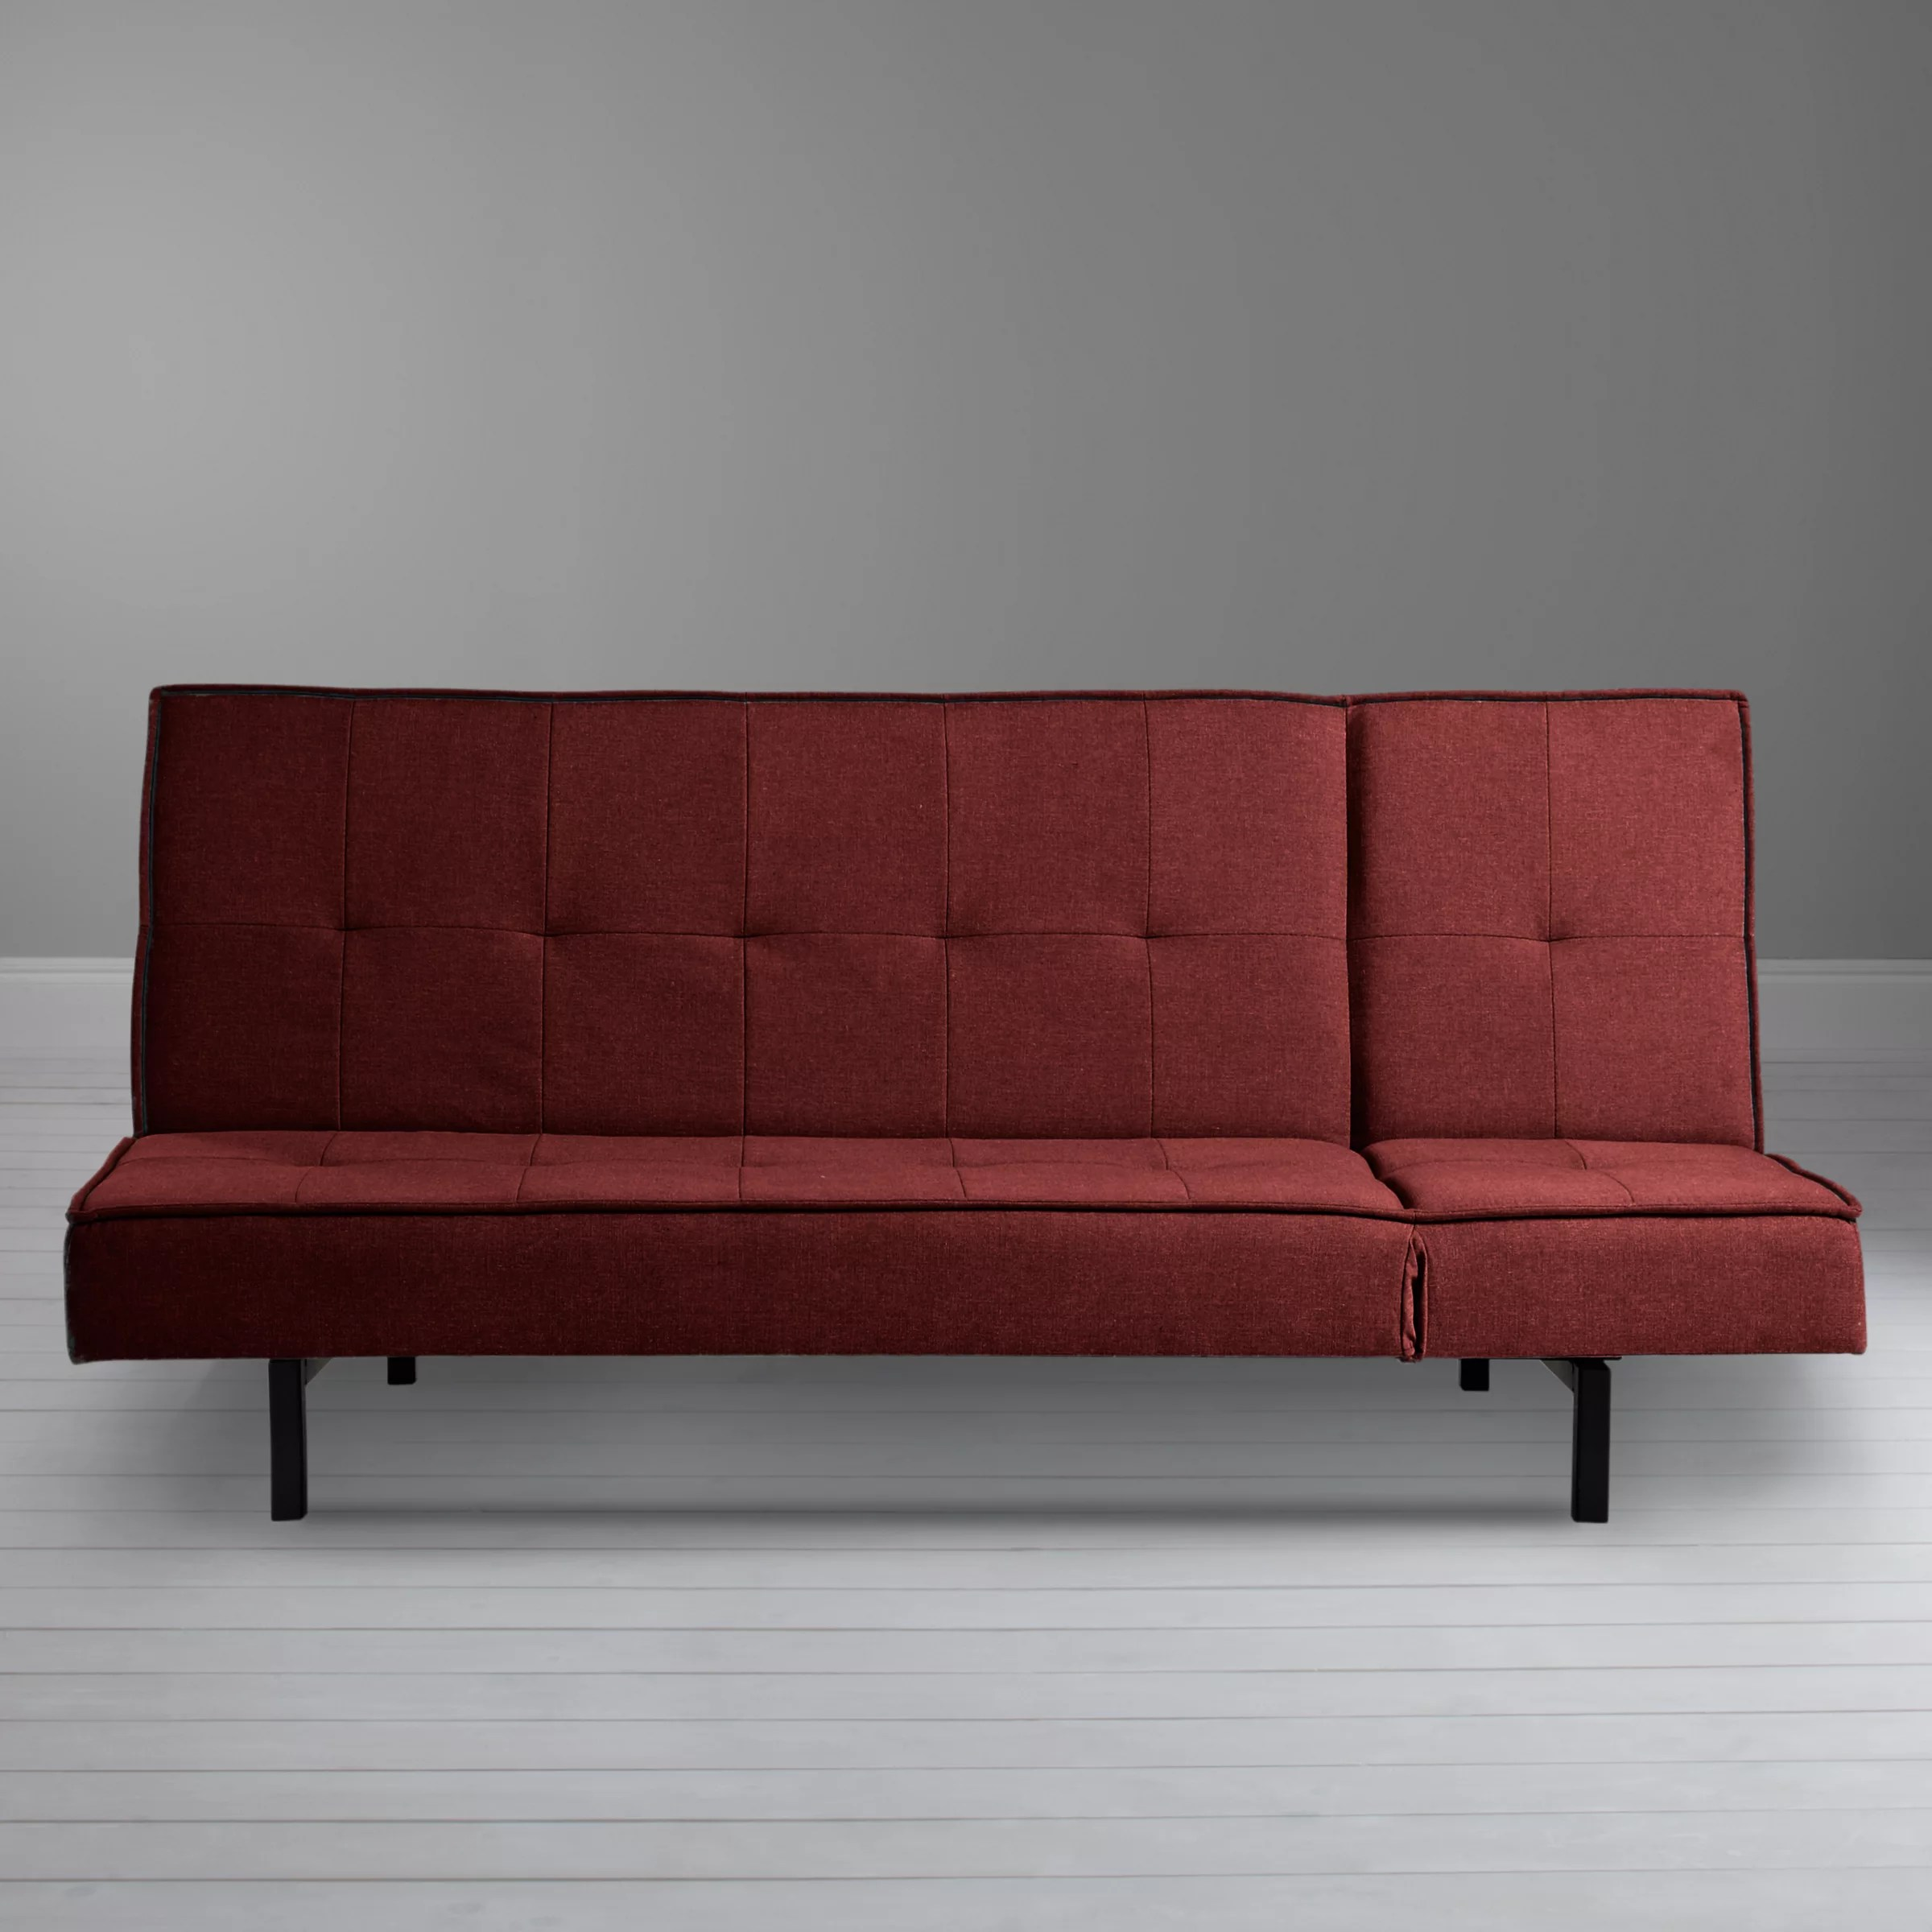 index mulberry sofa bed outdoor wooden uk house by john lewis duo creativeadvertisingblog